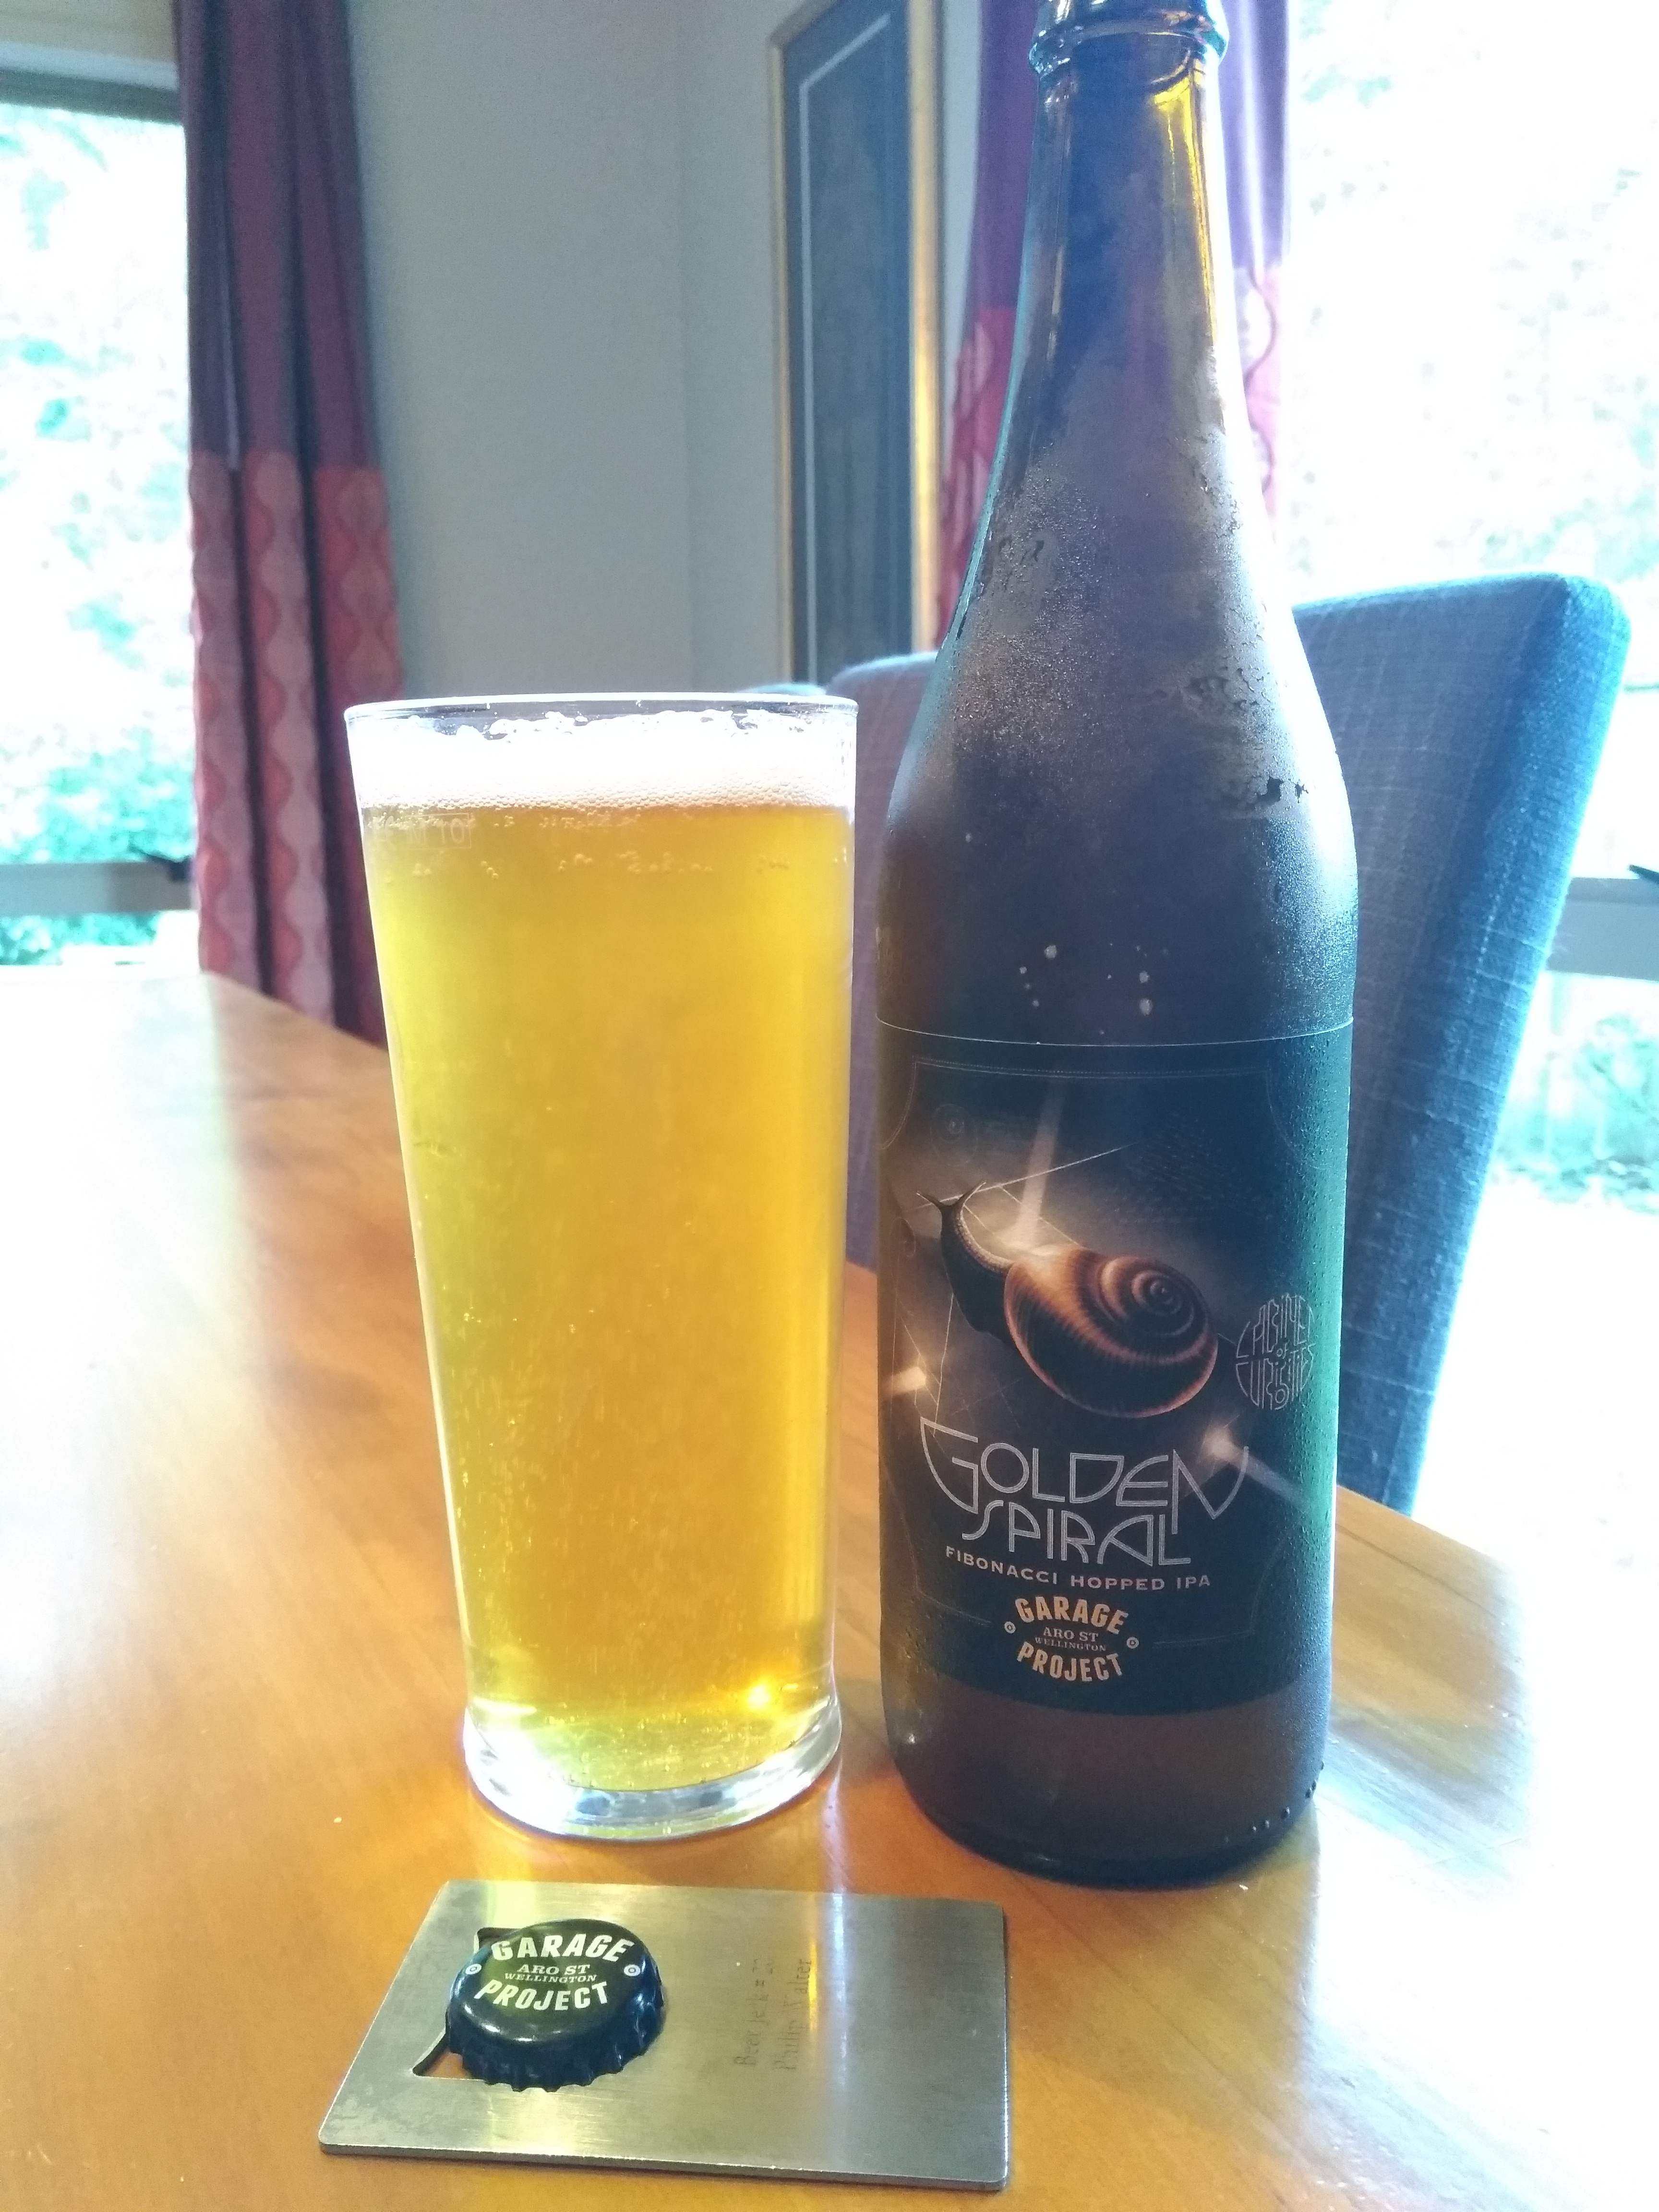 Beer 1044 Garage Project Golden Spiral A Life Just As Ordinary